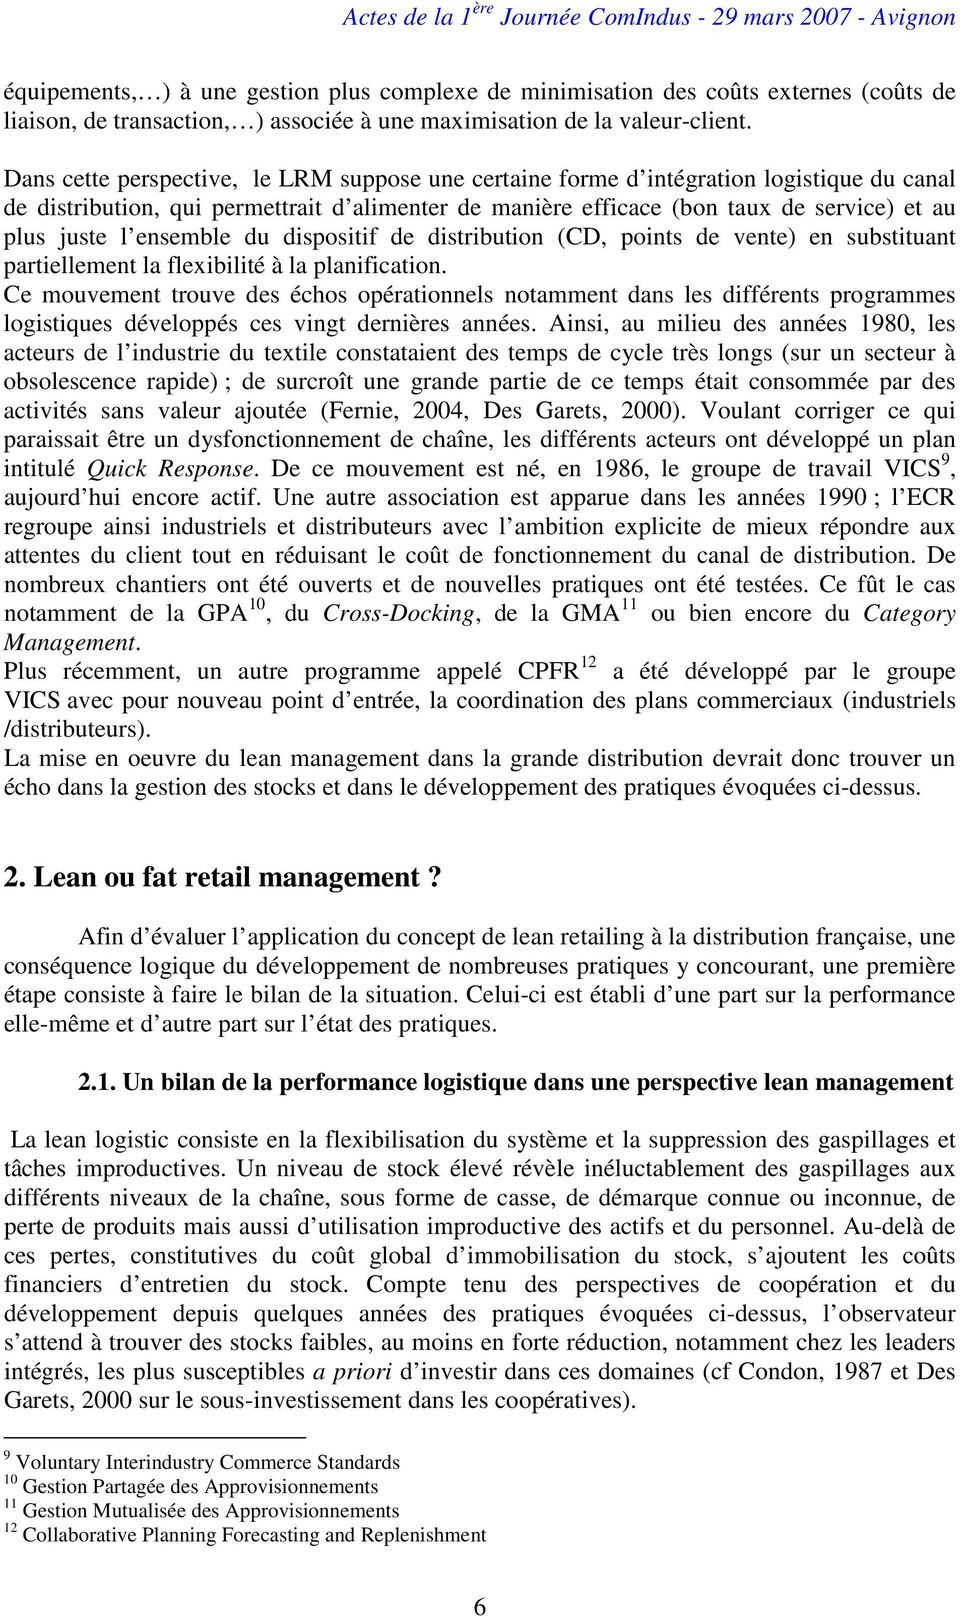 ensemble du dispositif de distribution (CD, points de vente) en substituant partiellement la flexibilité à la planification.